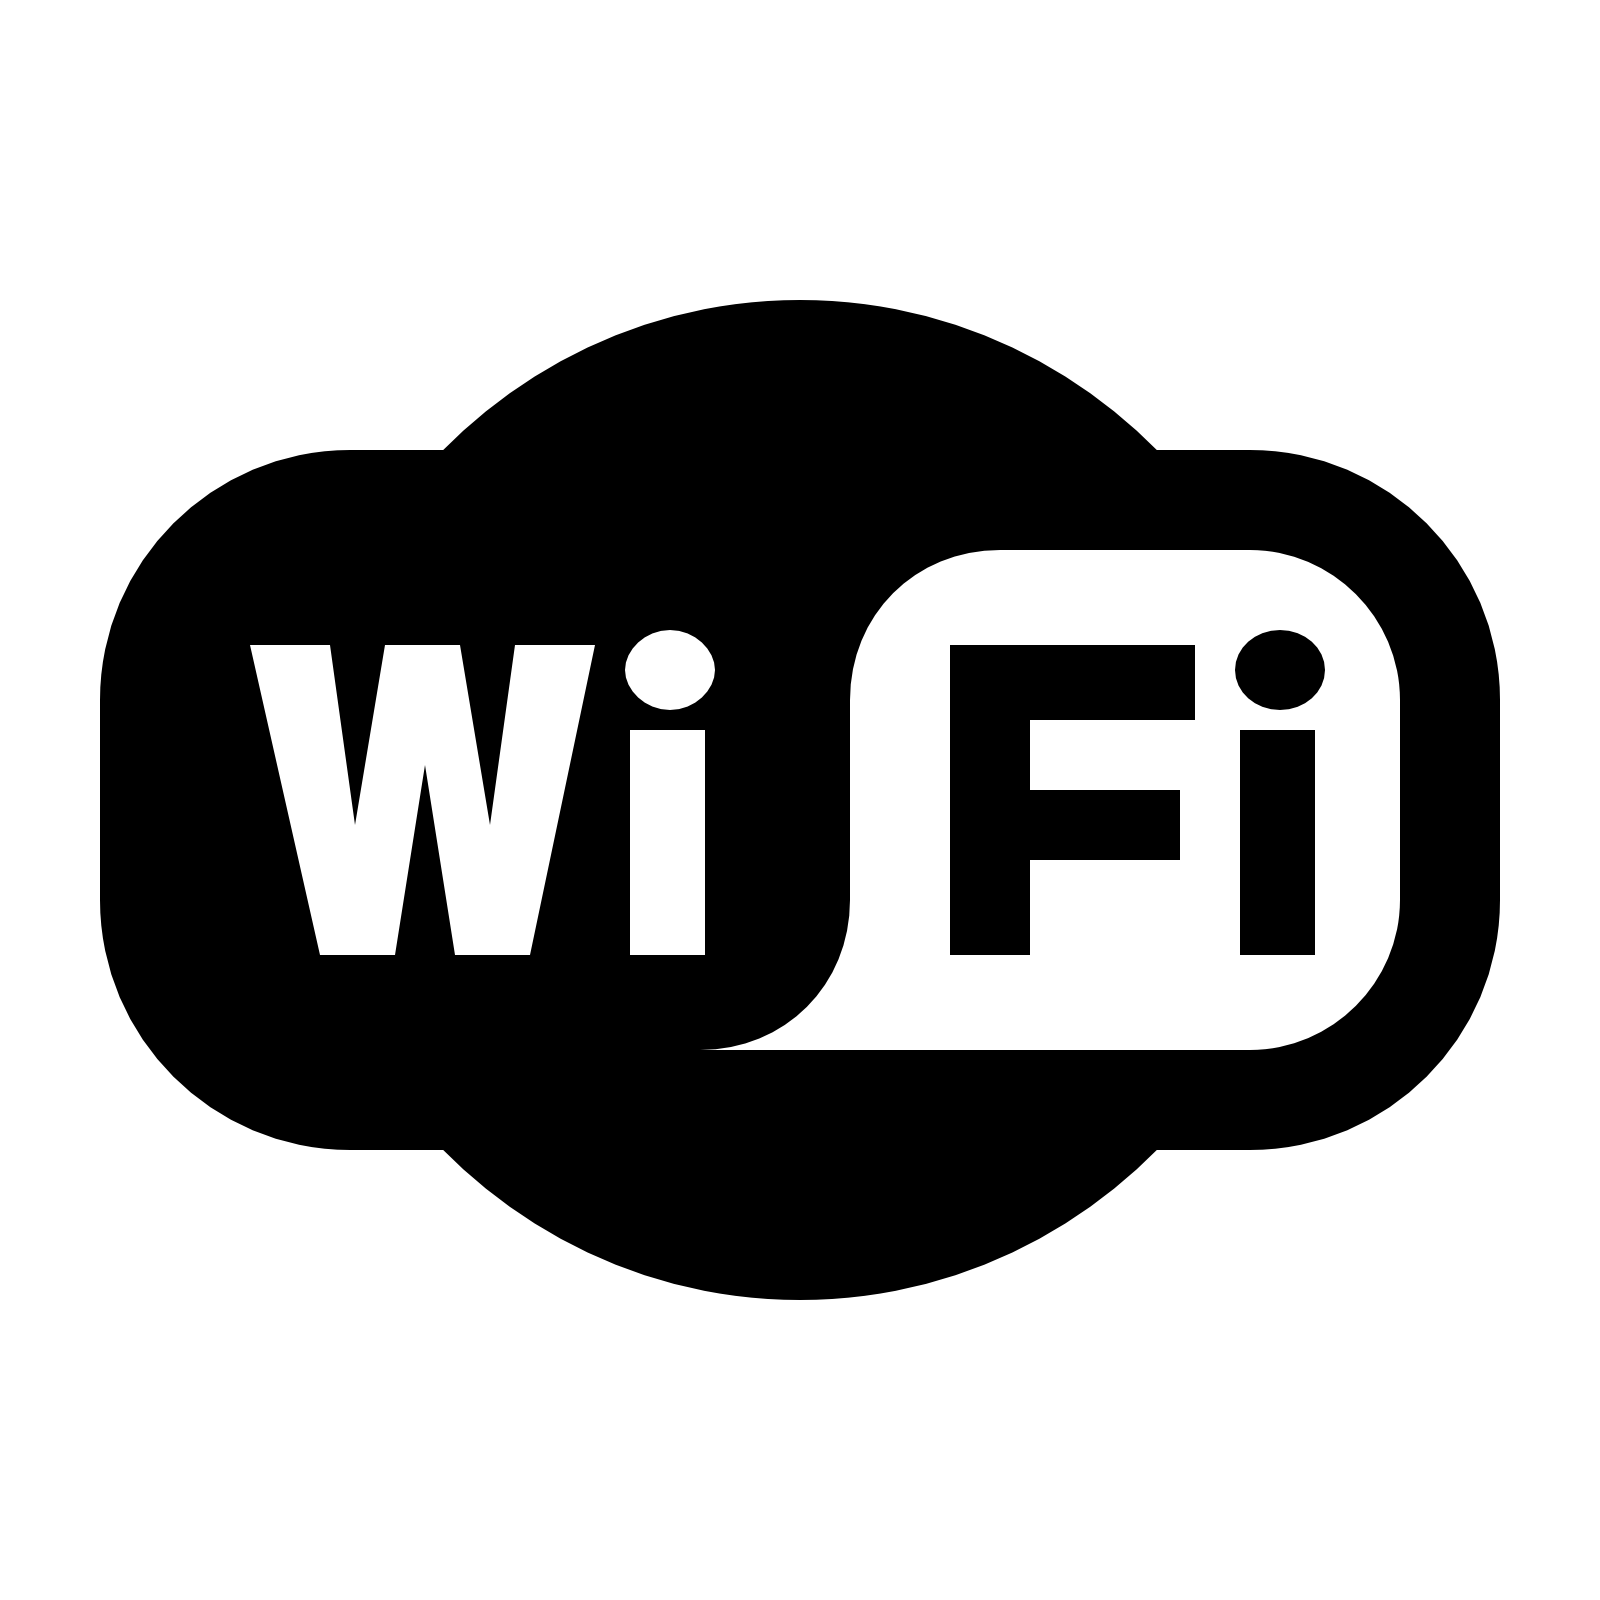 Logo free wifi png. Transparent images pluspng icon